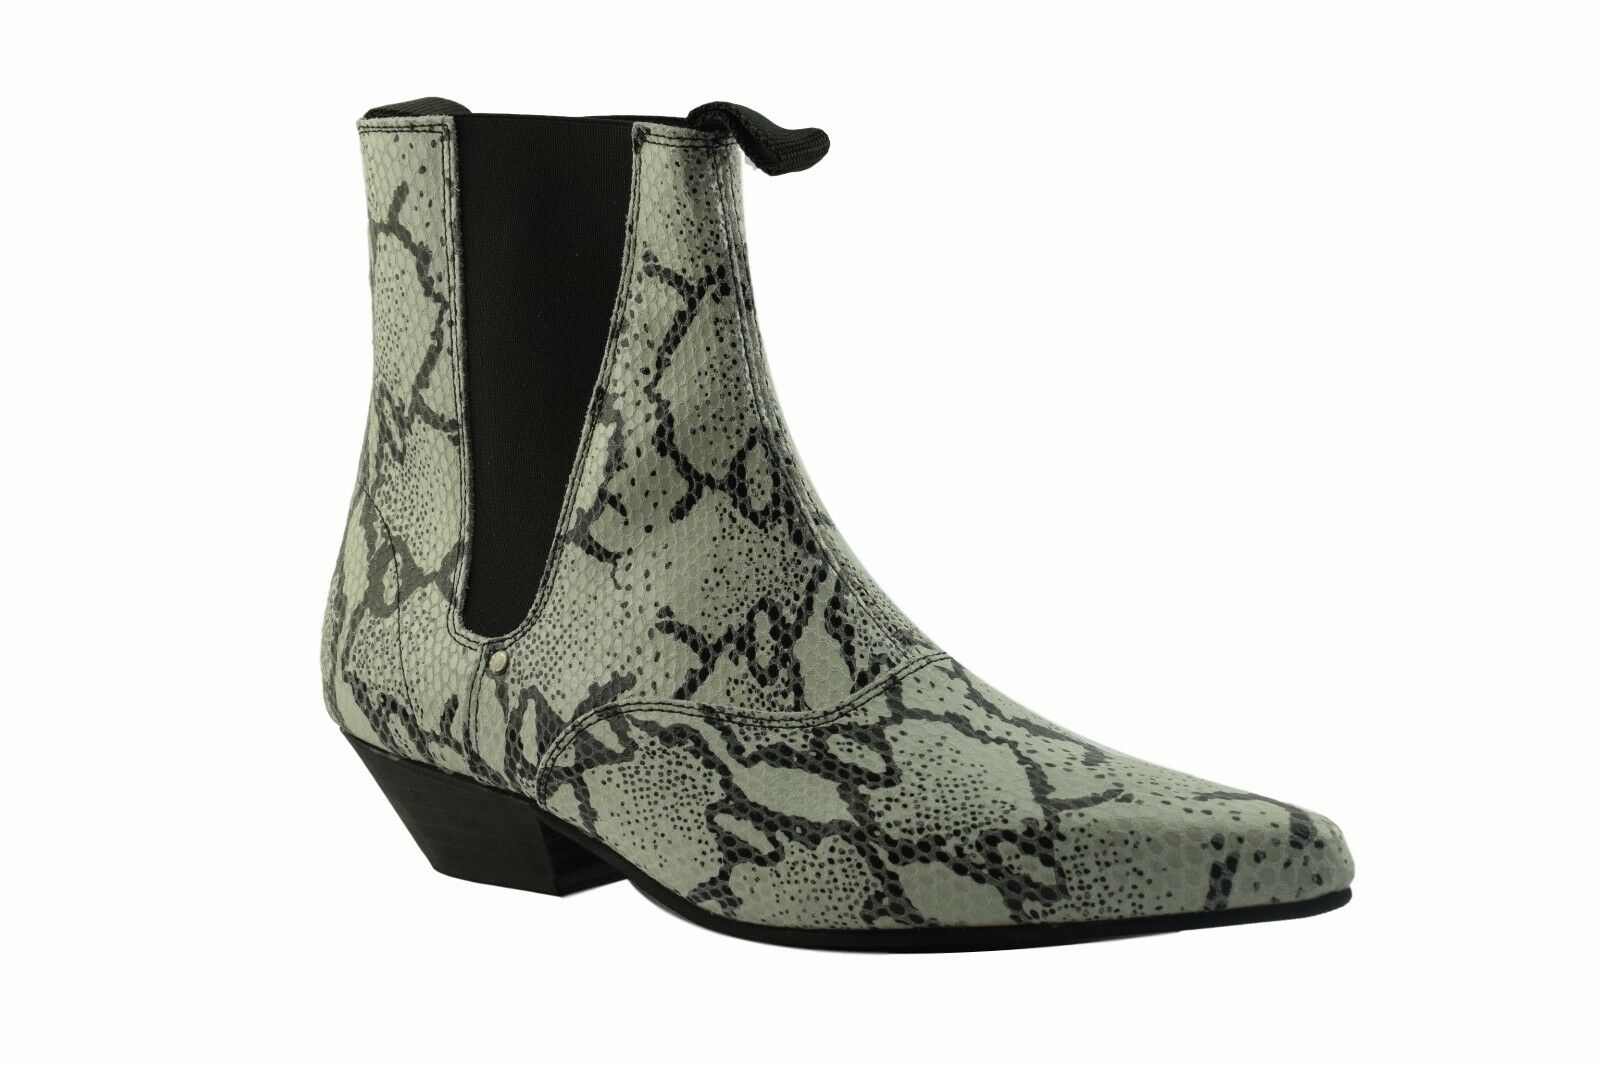 Steel Ground WEISS Leder Chelsea Stiefel Python Skin Look Beat Boot Cuban Heel